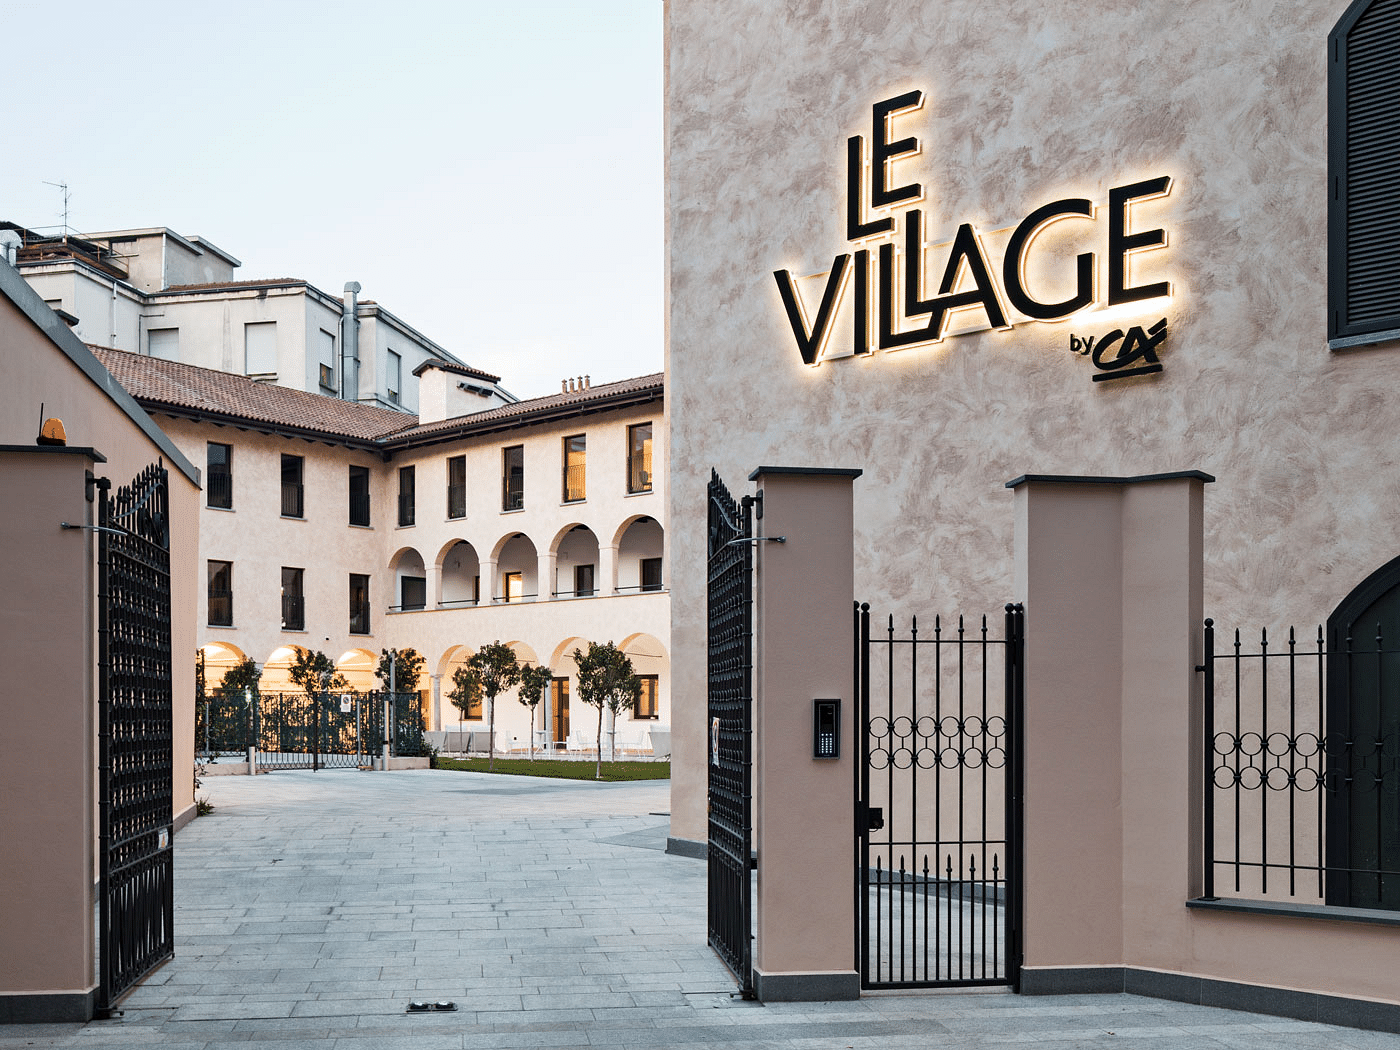 Cover image - LeVillage by CA Milano